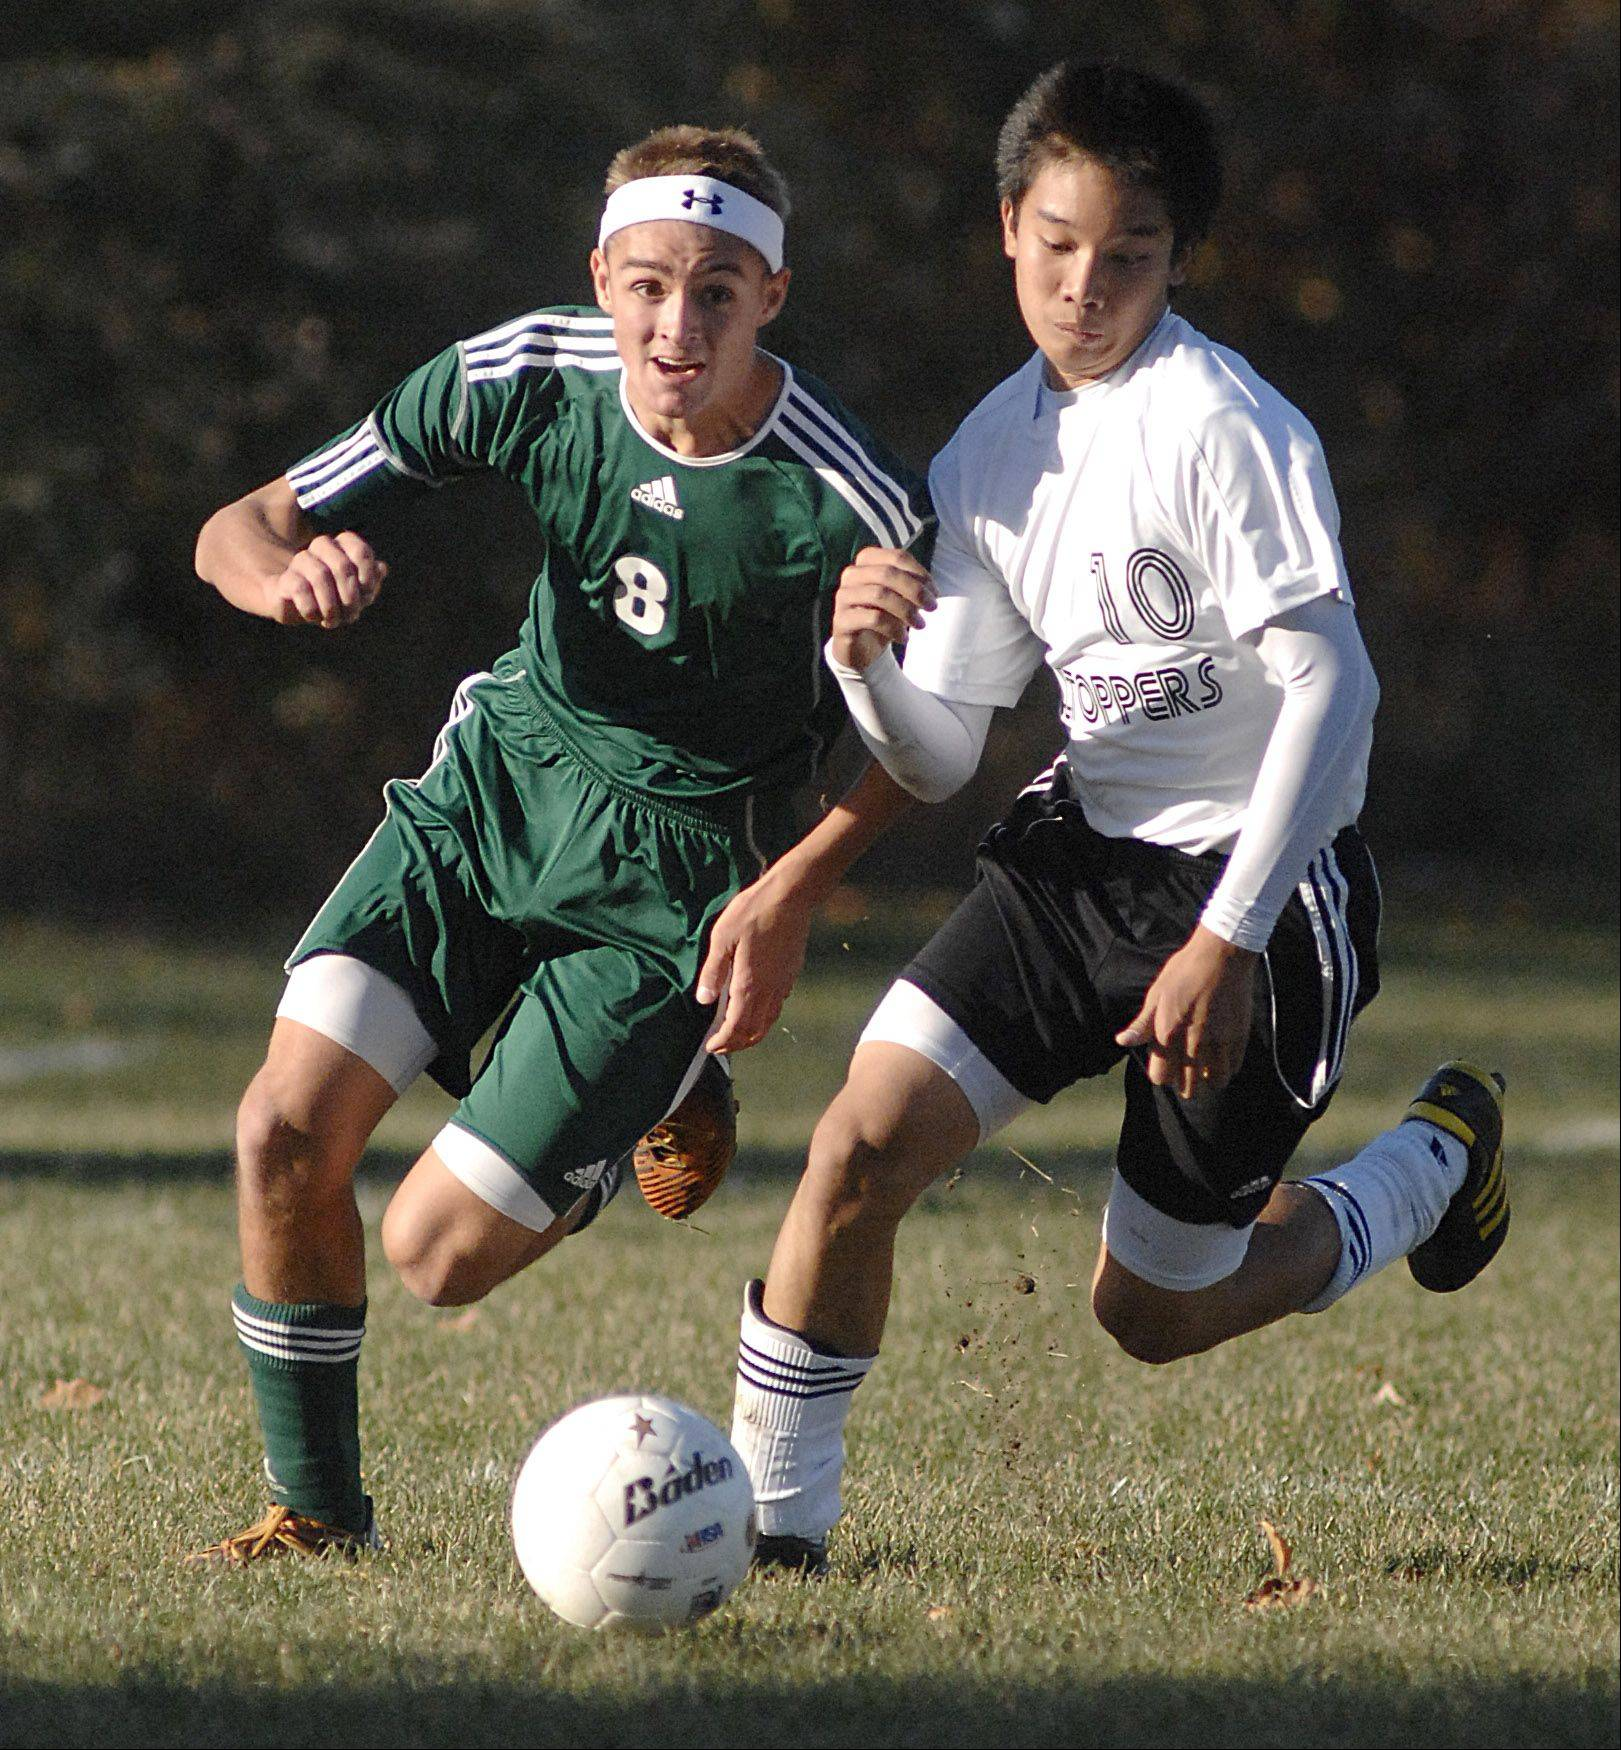 St. Edward's Johnny Shepherd and Elgin Academy's Tano Xayasarn fight for the ball in the first half on Wednesday, October 10.